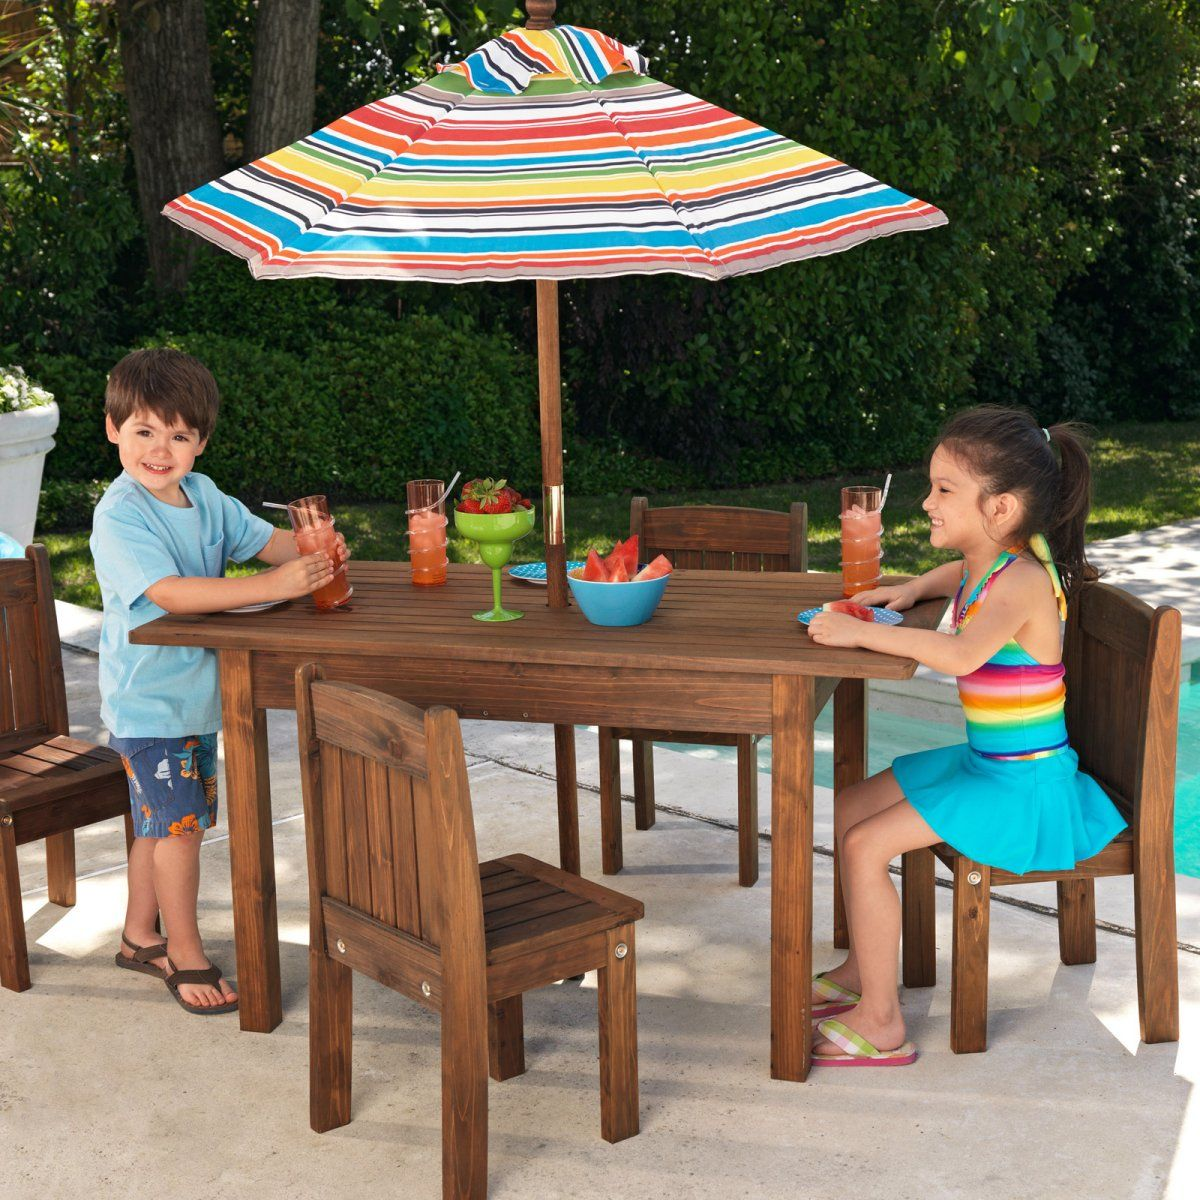 Kidkraft Outdoor Table And 4 Stacking Chairs With Striped Umbrella